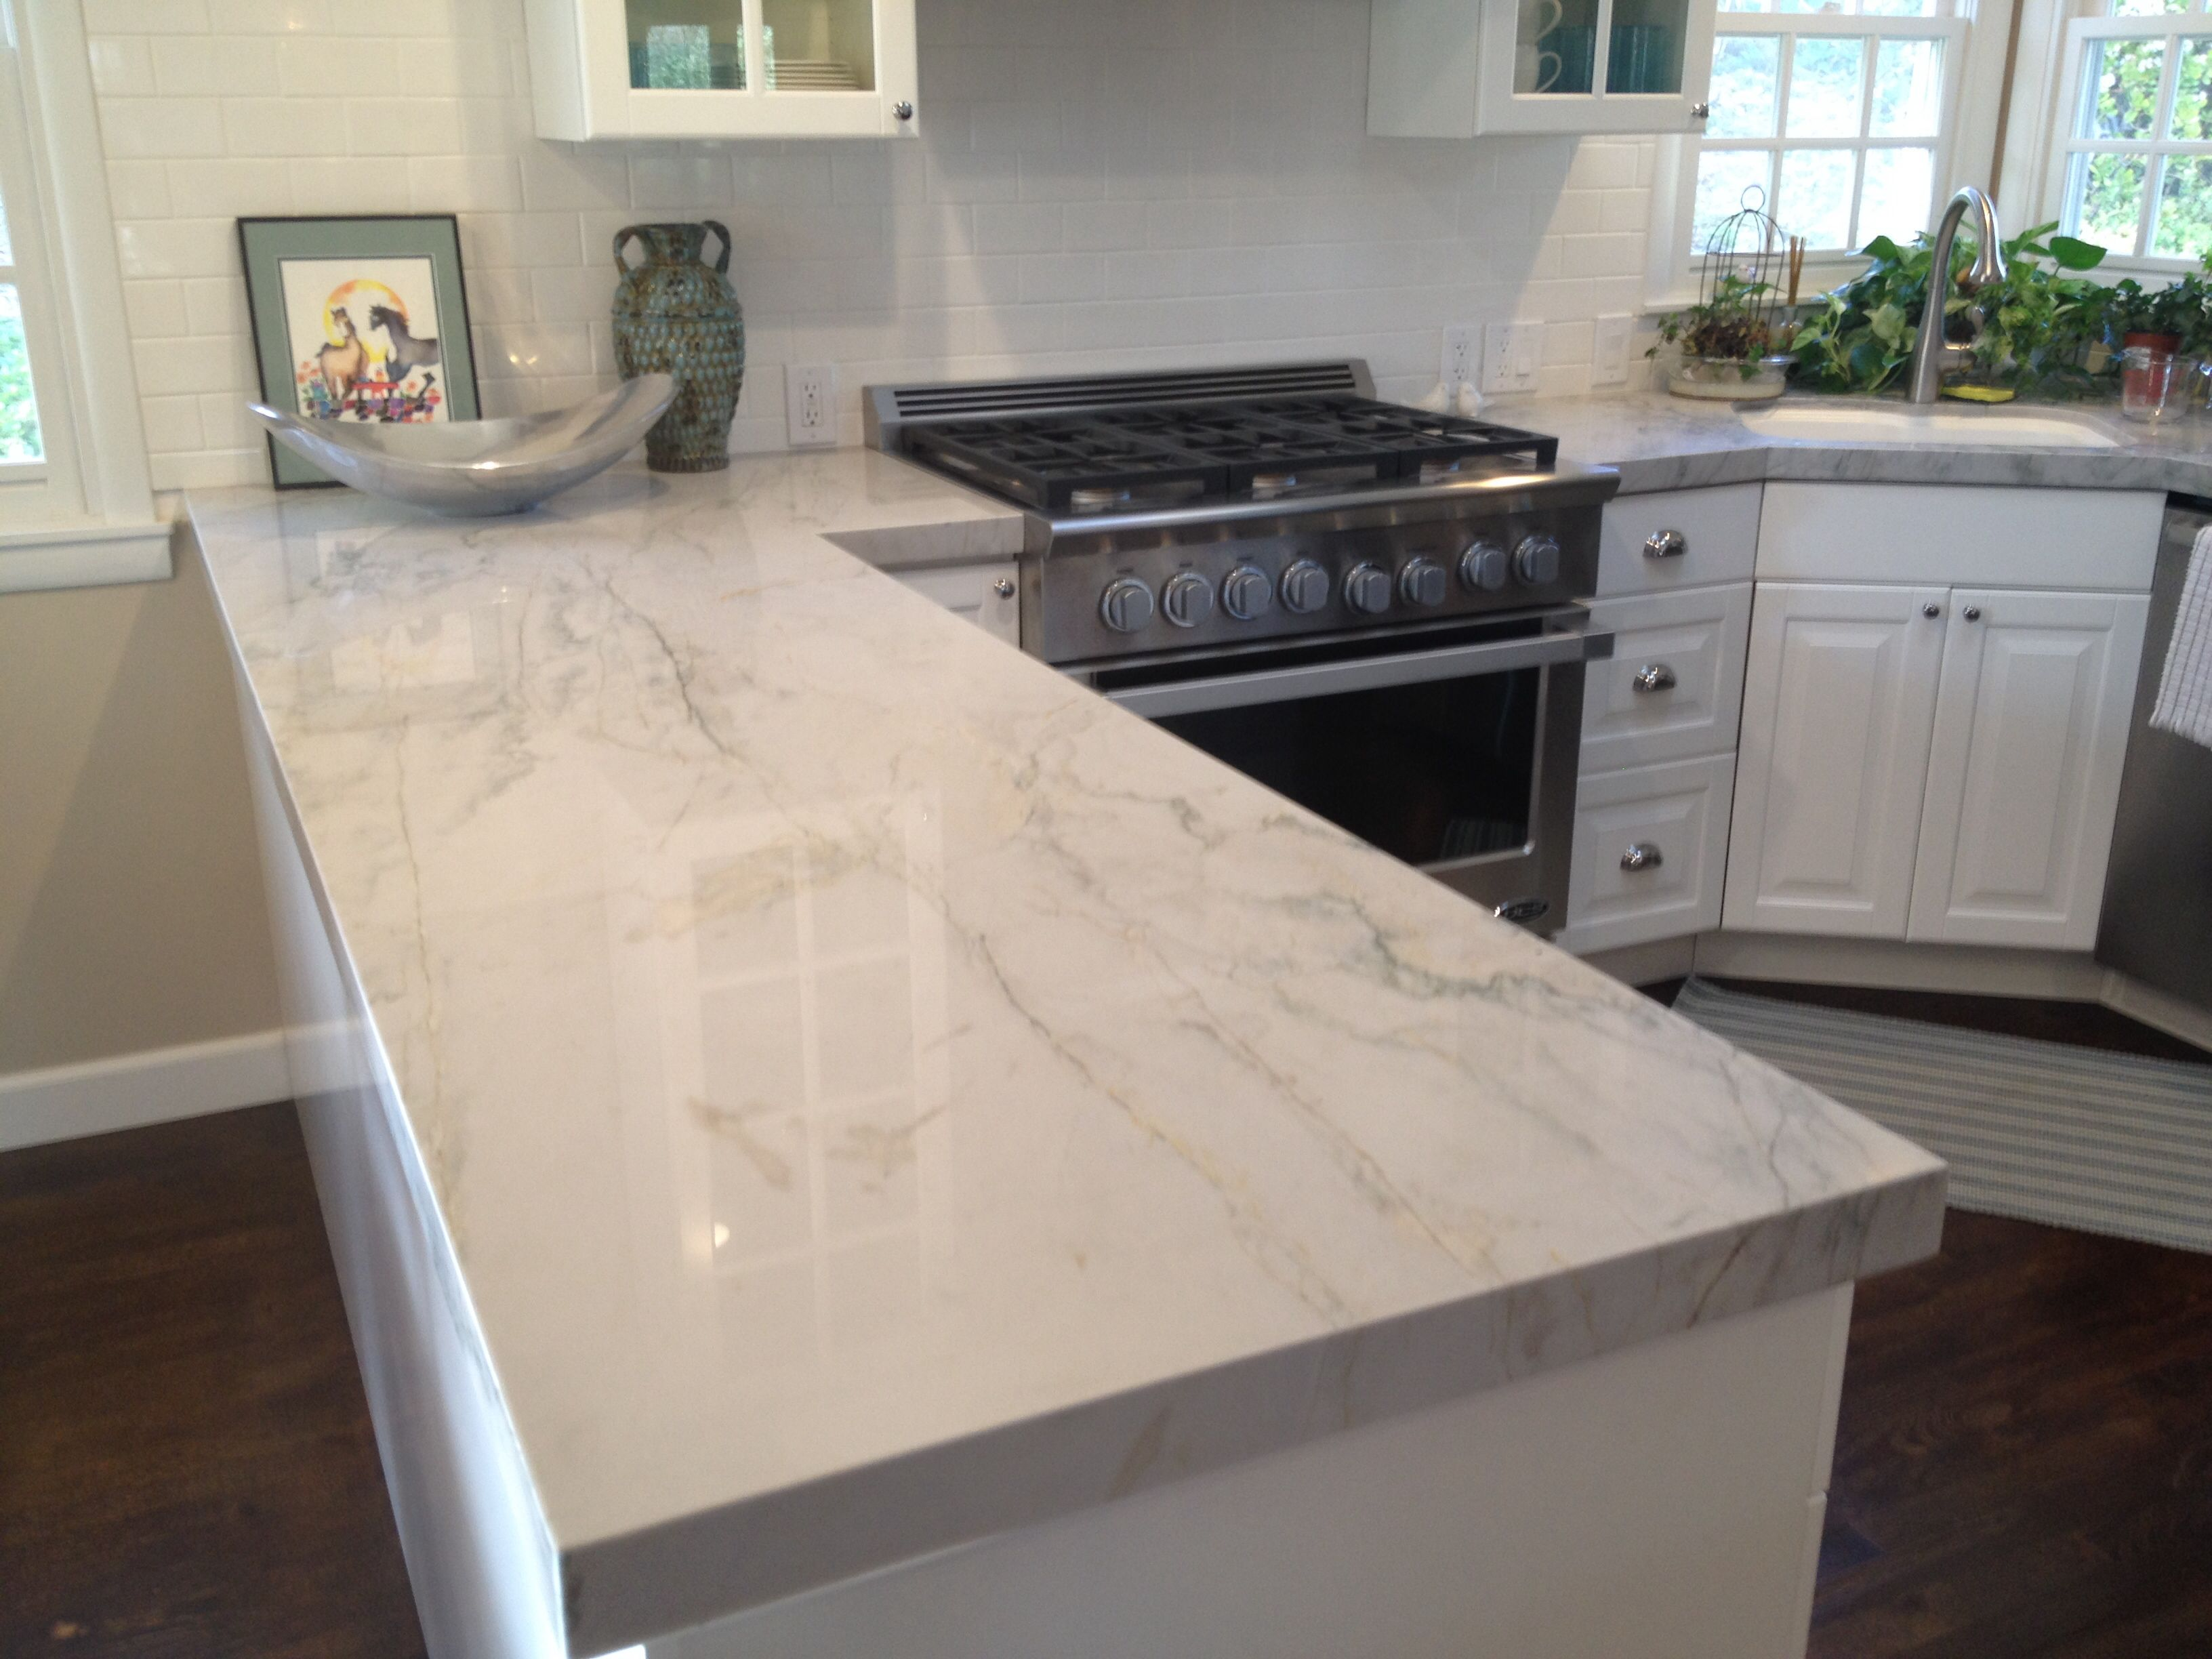 Quartzite countertops decorating ideas pinterest for Kitchen countertop options pictures